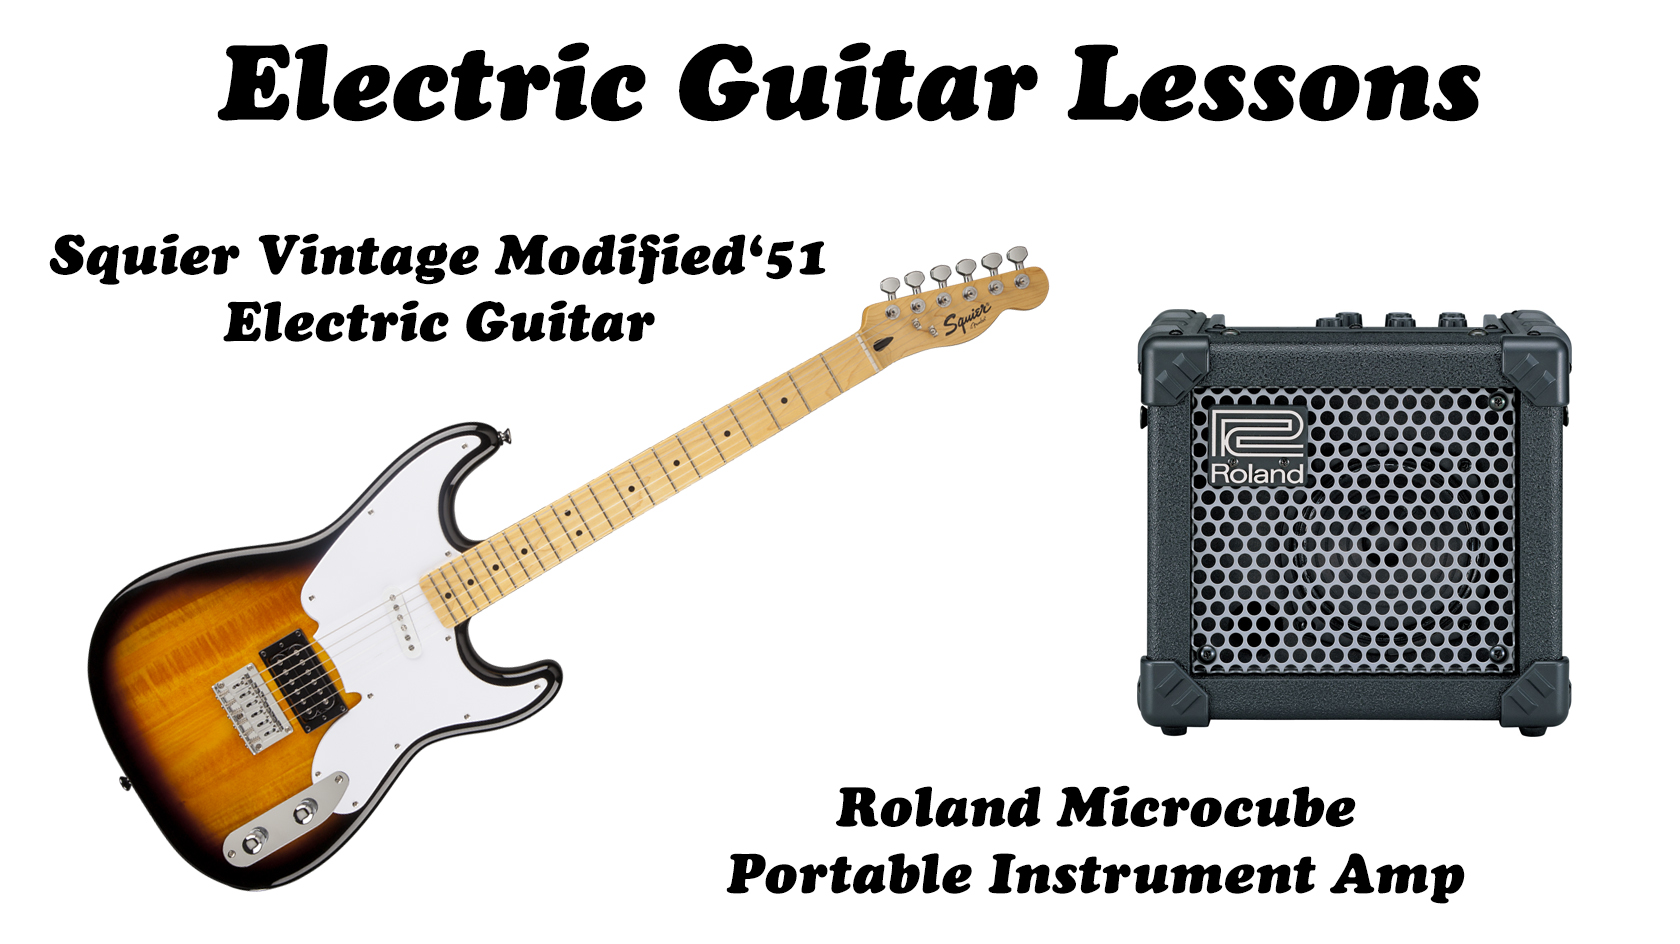 Electric Guitar Lessons Package